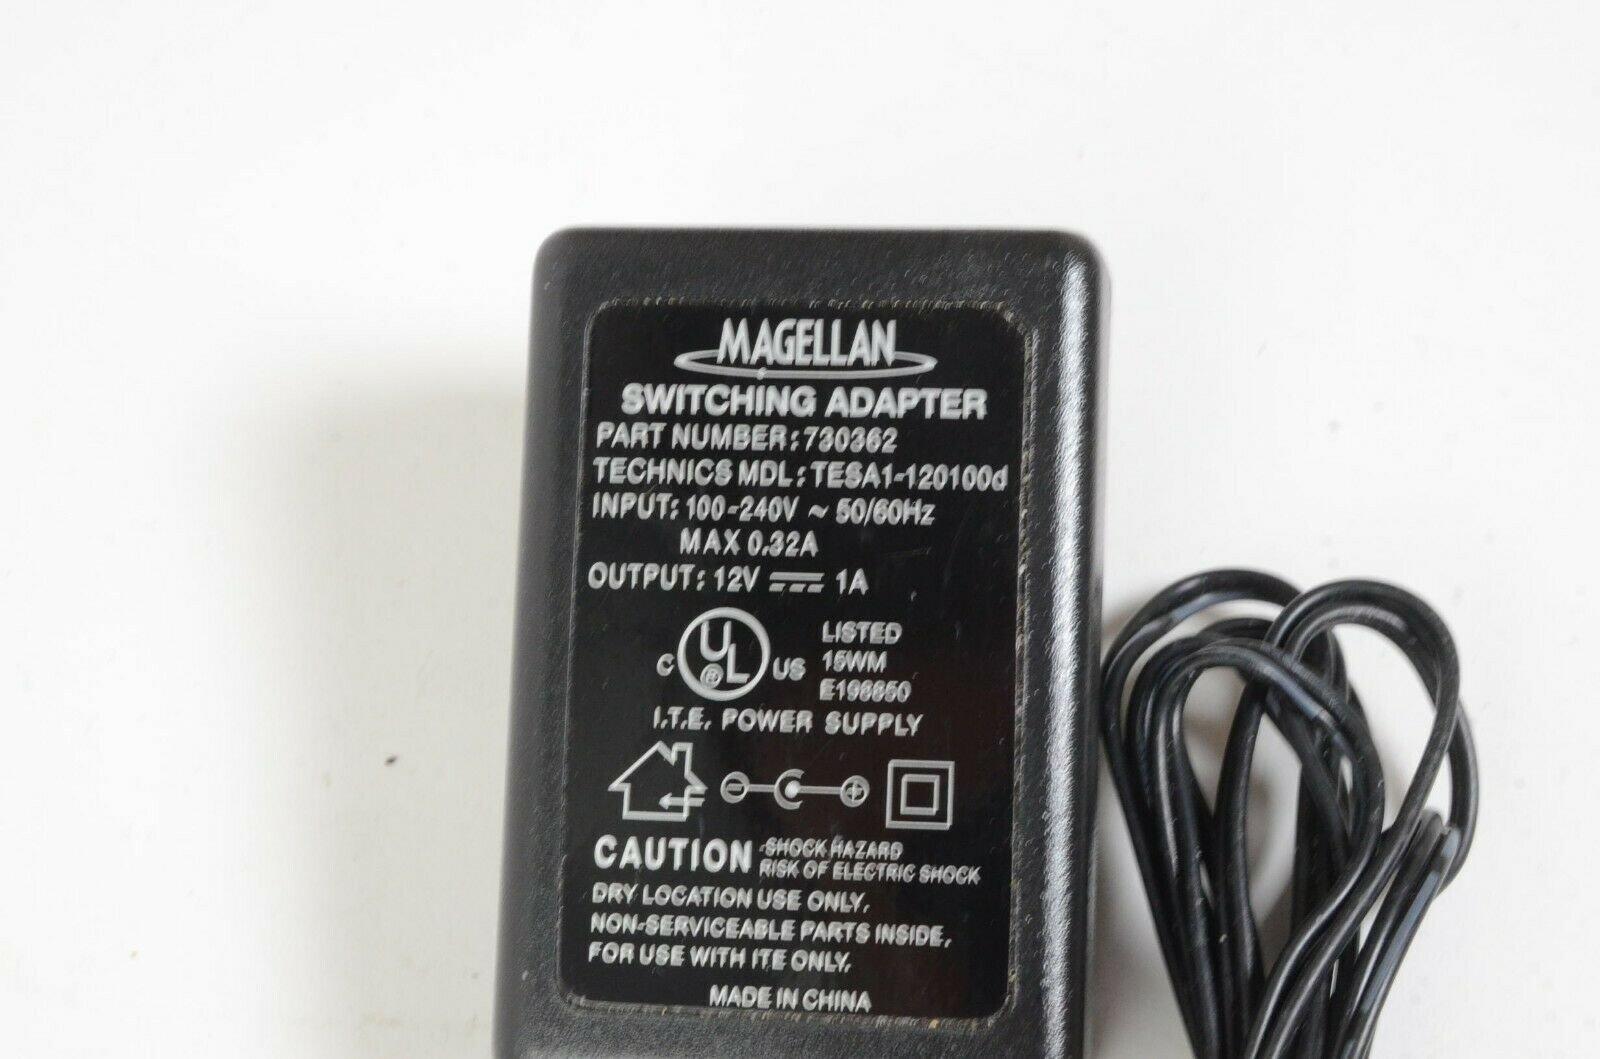 Magellan Roadmate Switching AC Adapter 730362 TESA1-120100d 12V 1A Tested Works